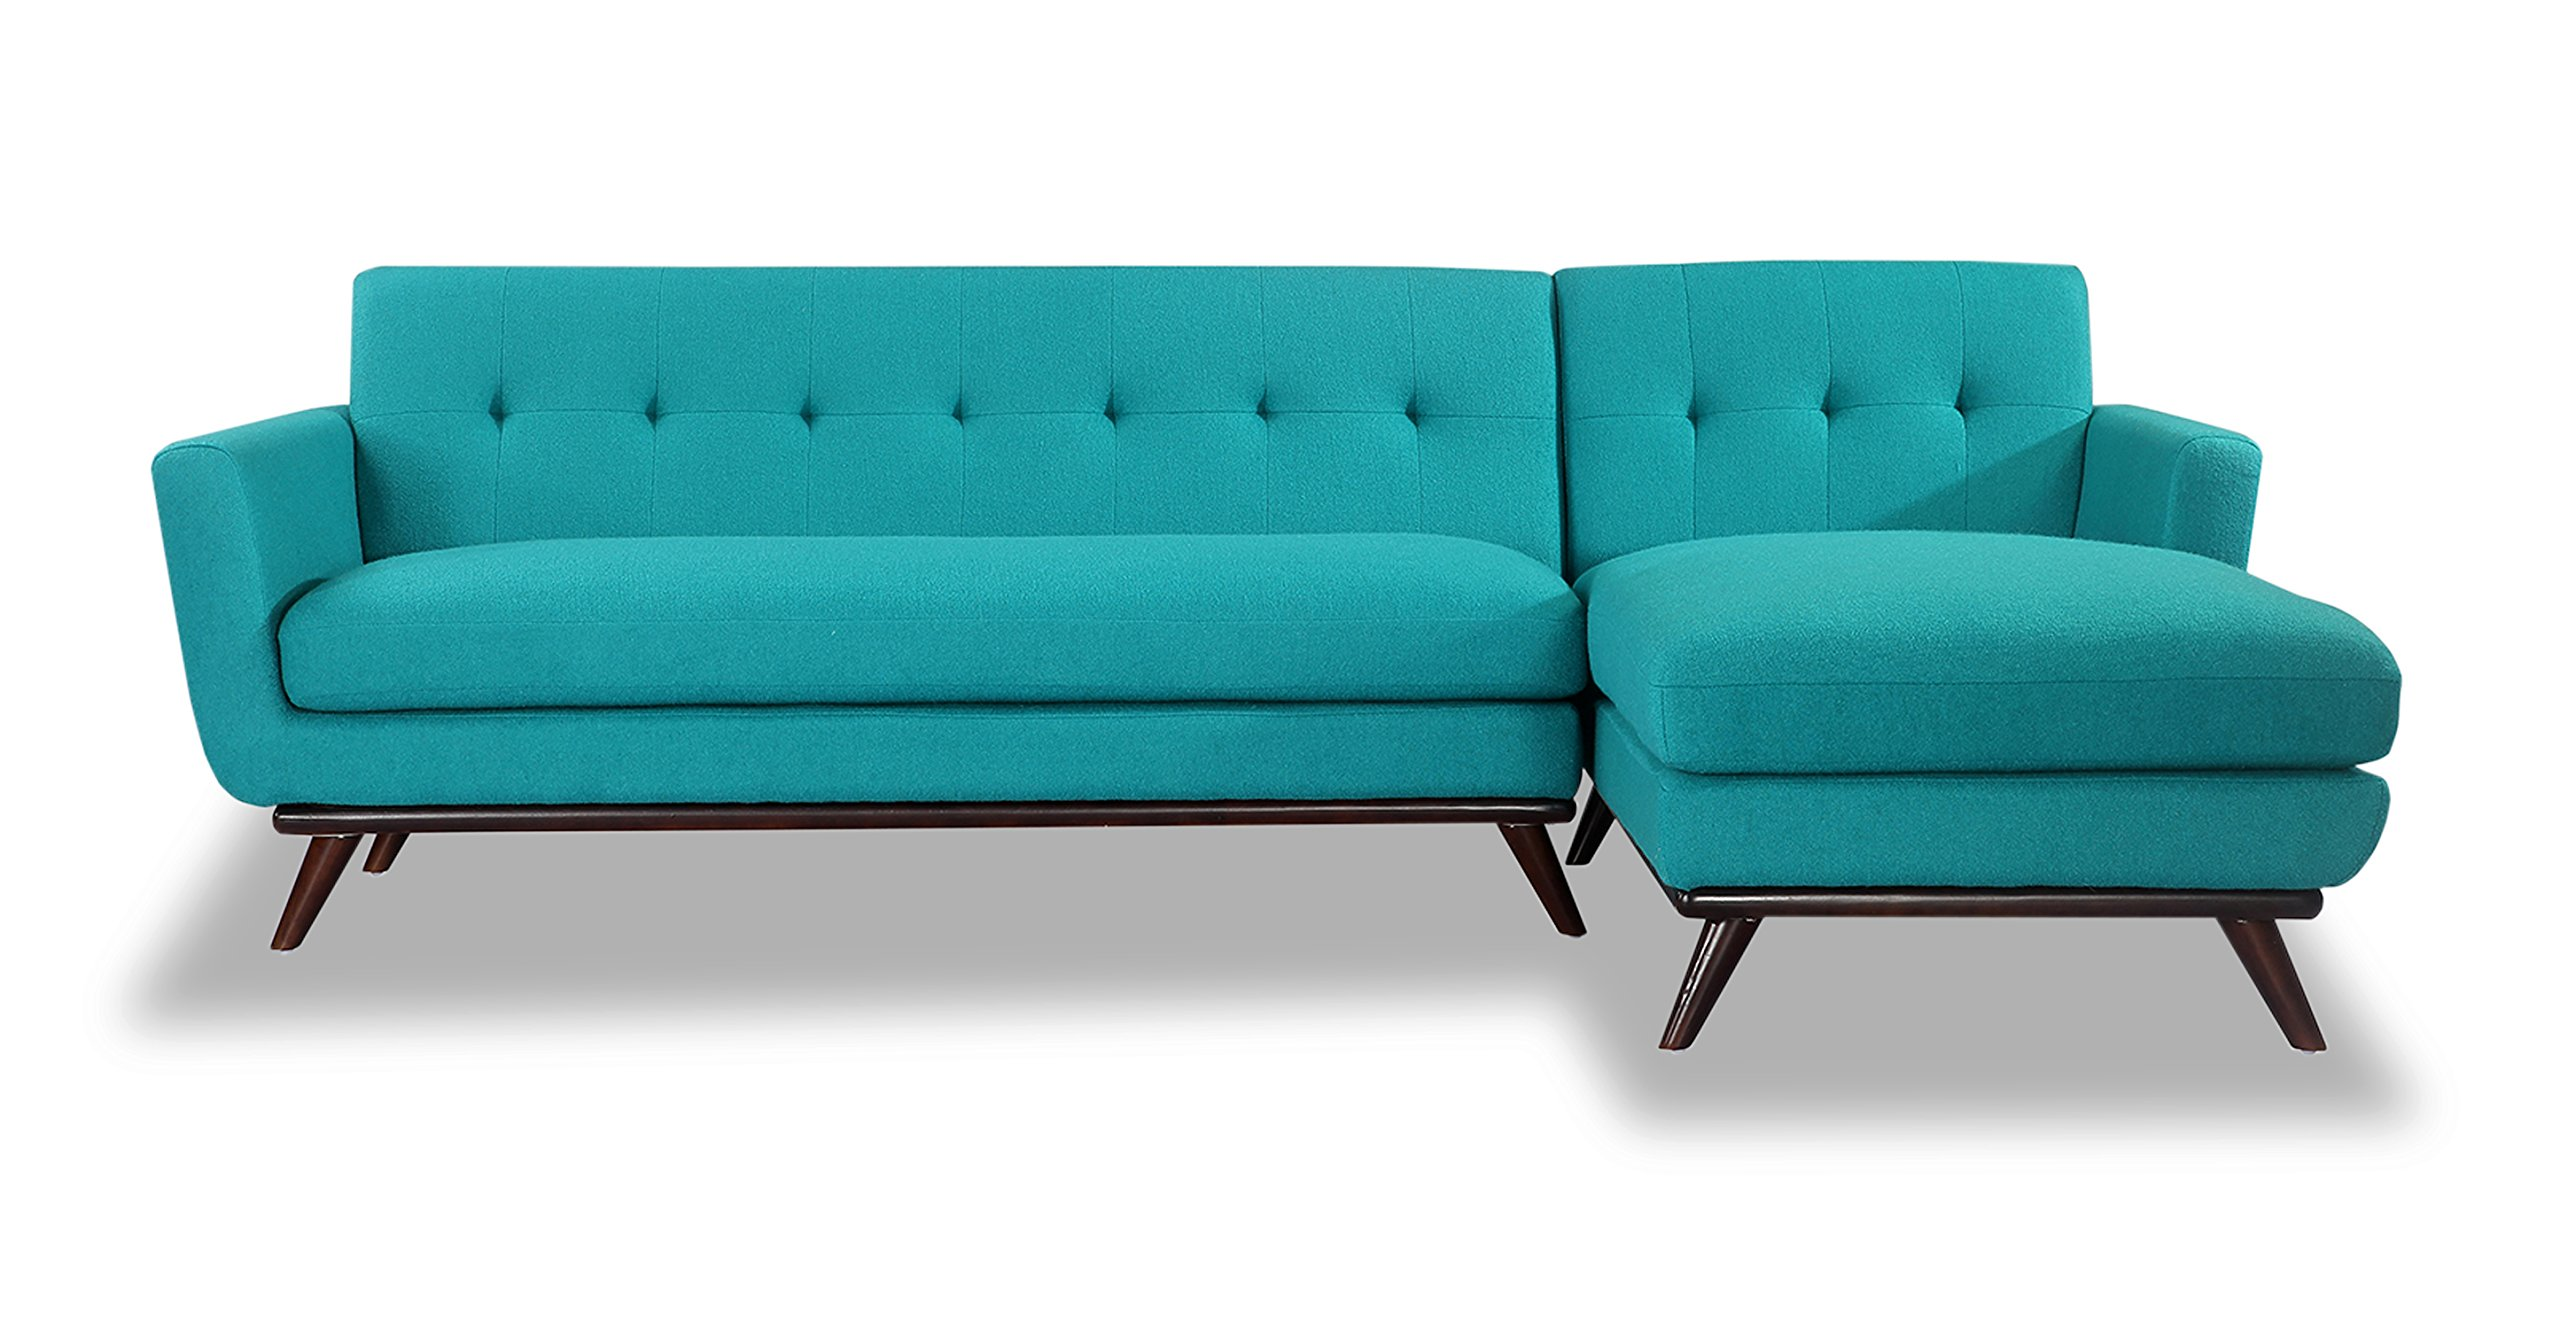 Kardiel Jackie Mid-Century Modern Sectional Sofa Right, Turquoise Cashmere Wool